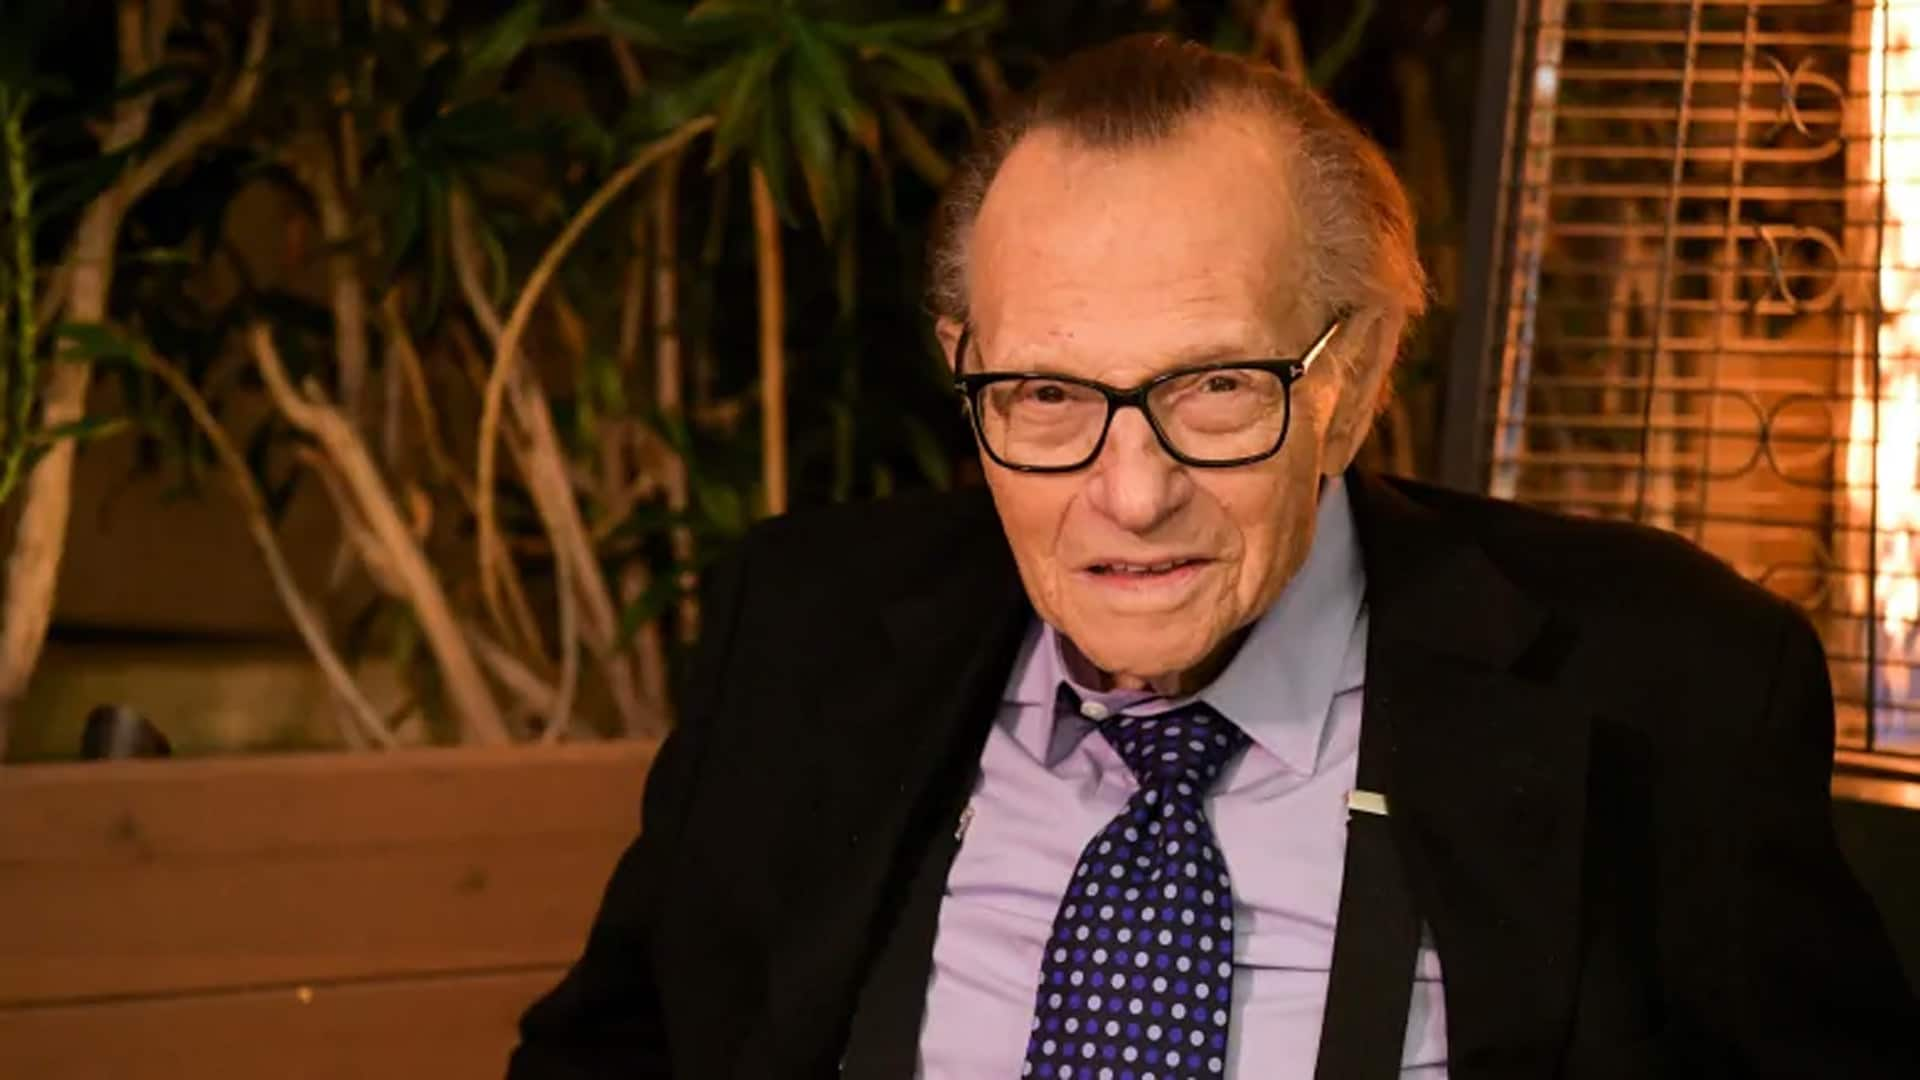 Larry King, renowned television and radio host, dies at 87 thumbnail